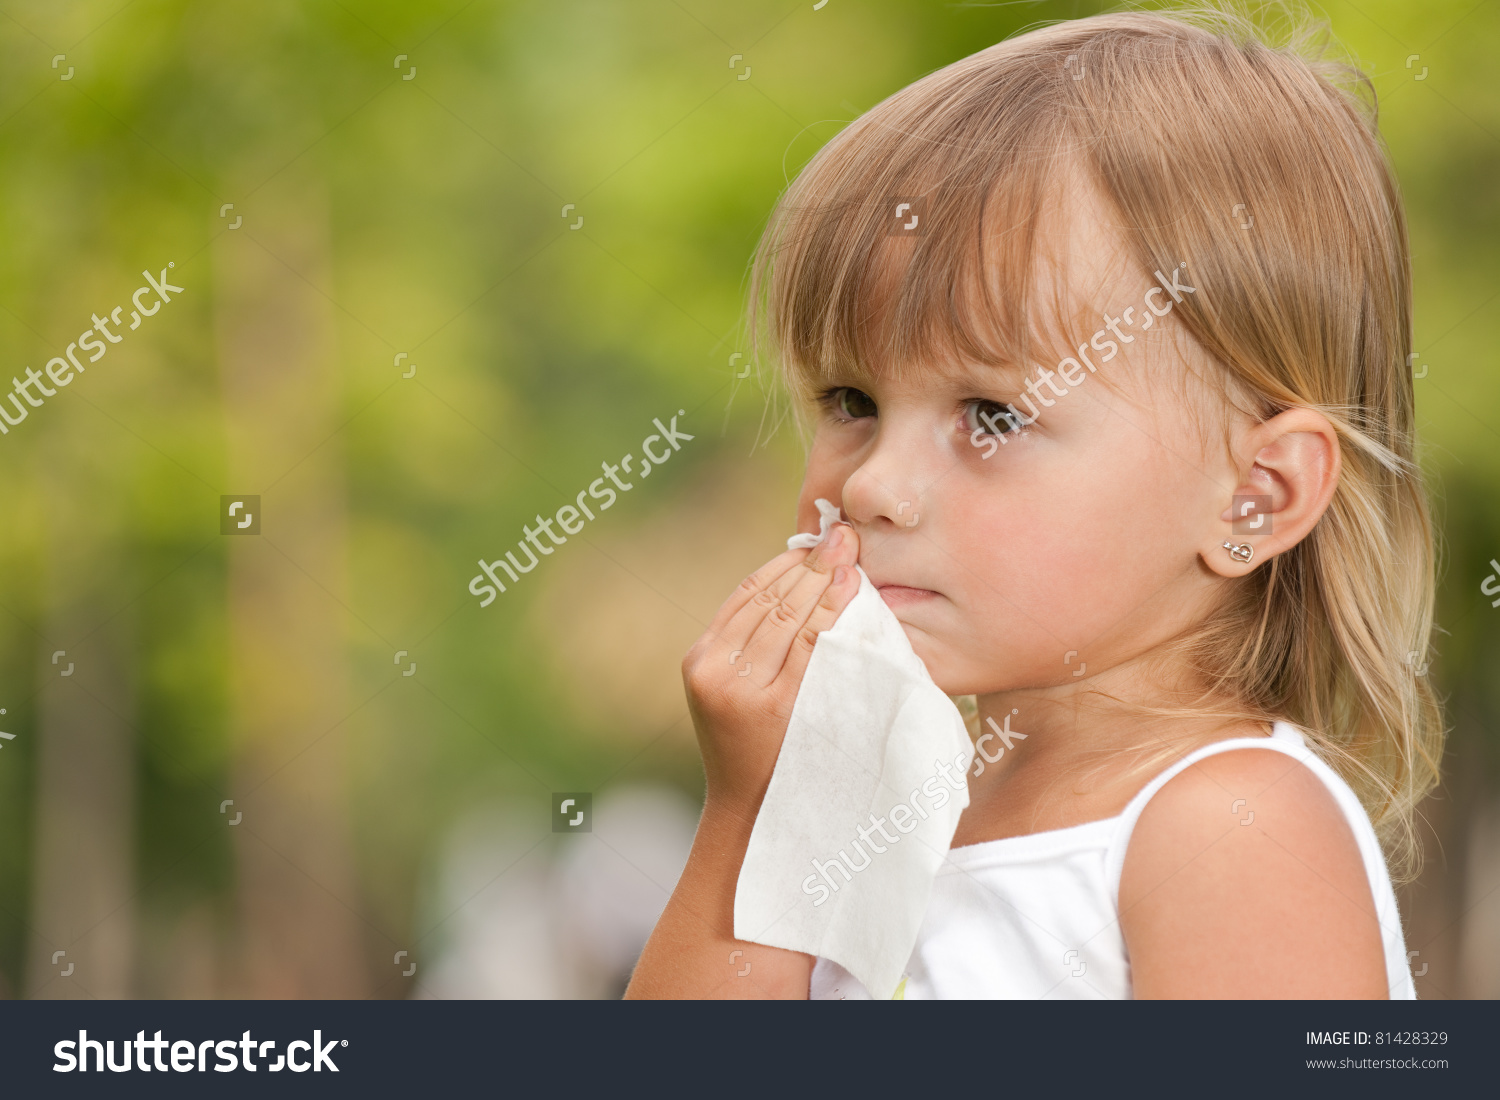 A Serious Little Girl Is Wipes A Mouth After Meal Stock Photo.